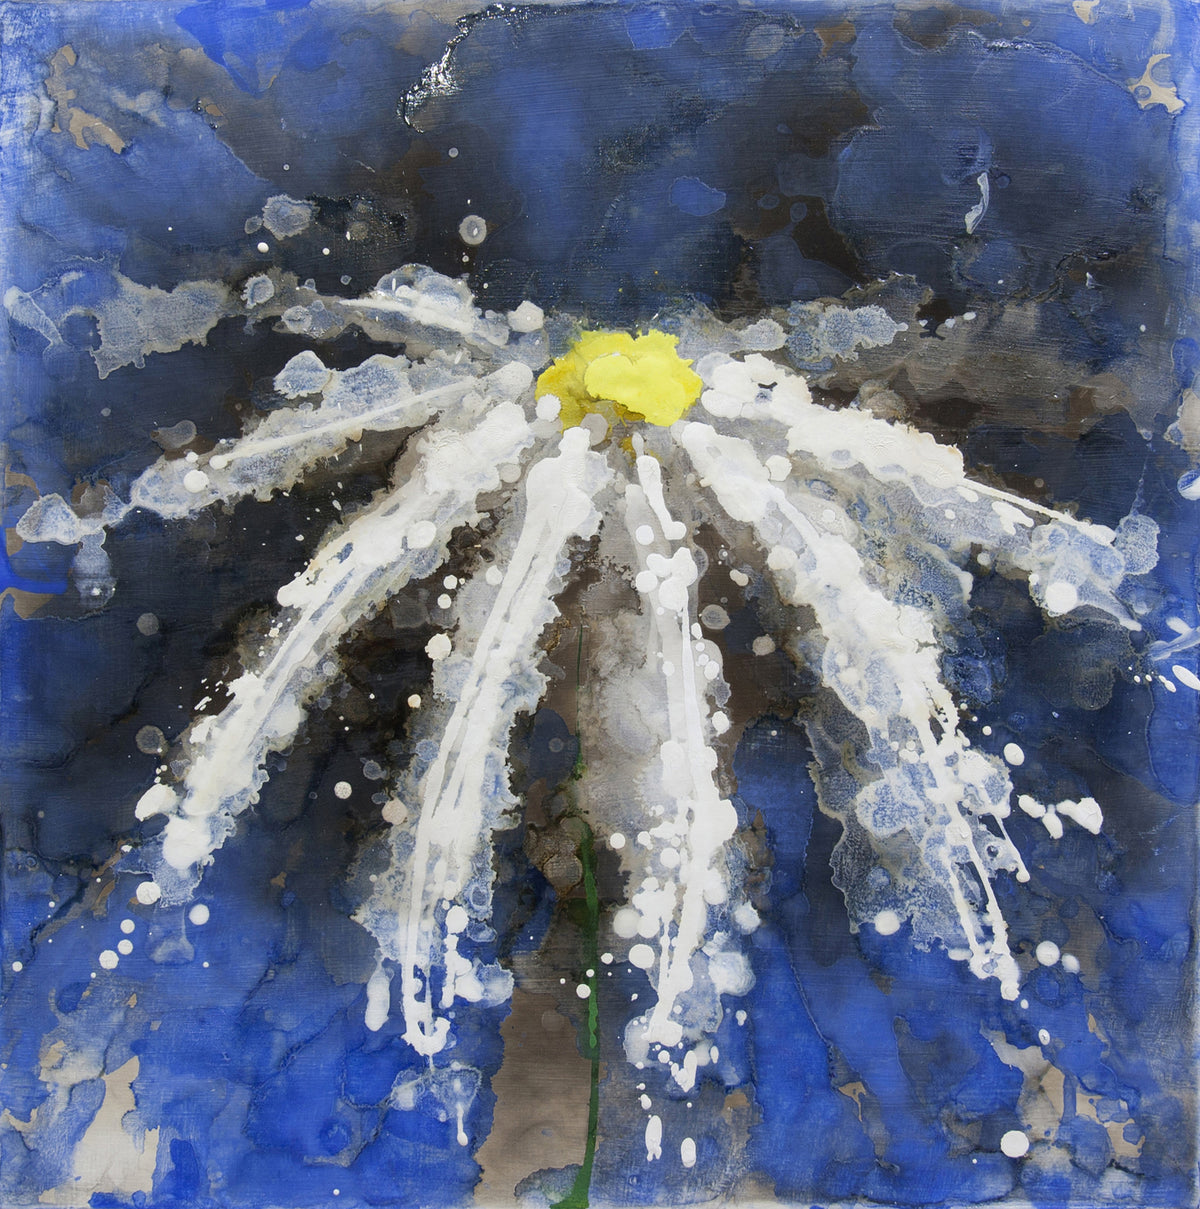 like i did, Royden Astrop, British artist, painter, fire painting, painting with fire, fire daisy, daisy painting, flower painting, blue daisy, oil painting